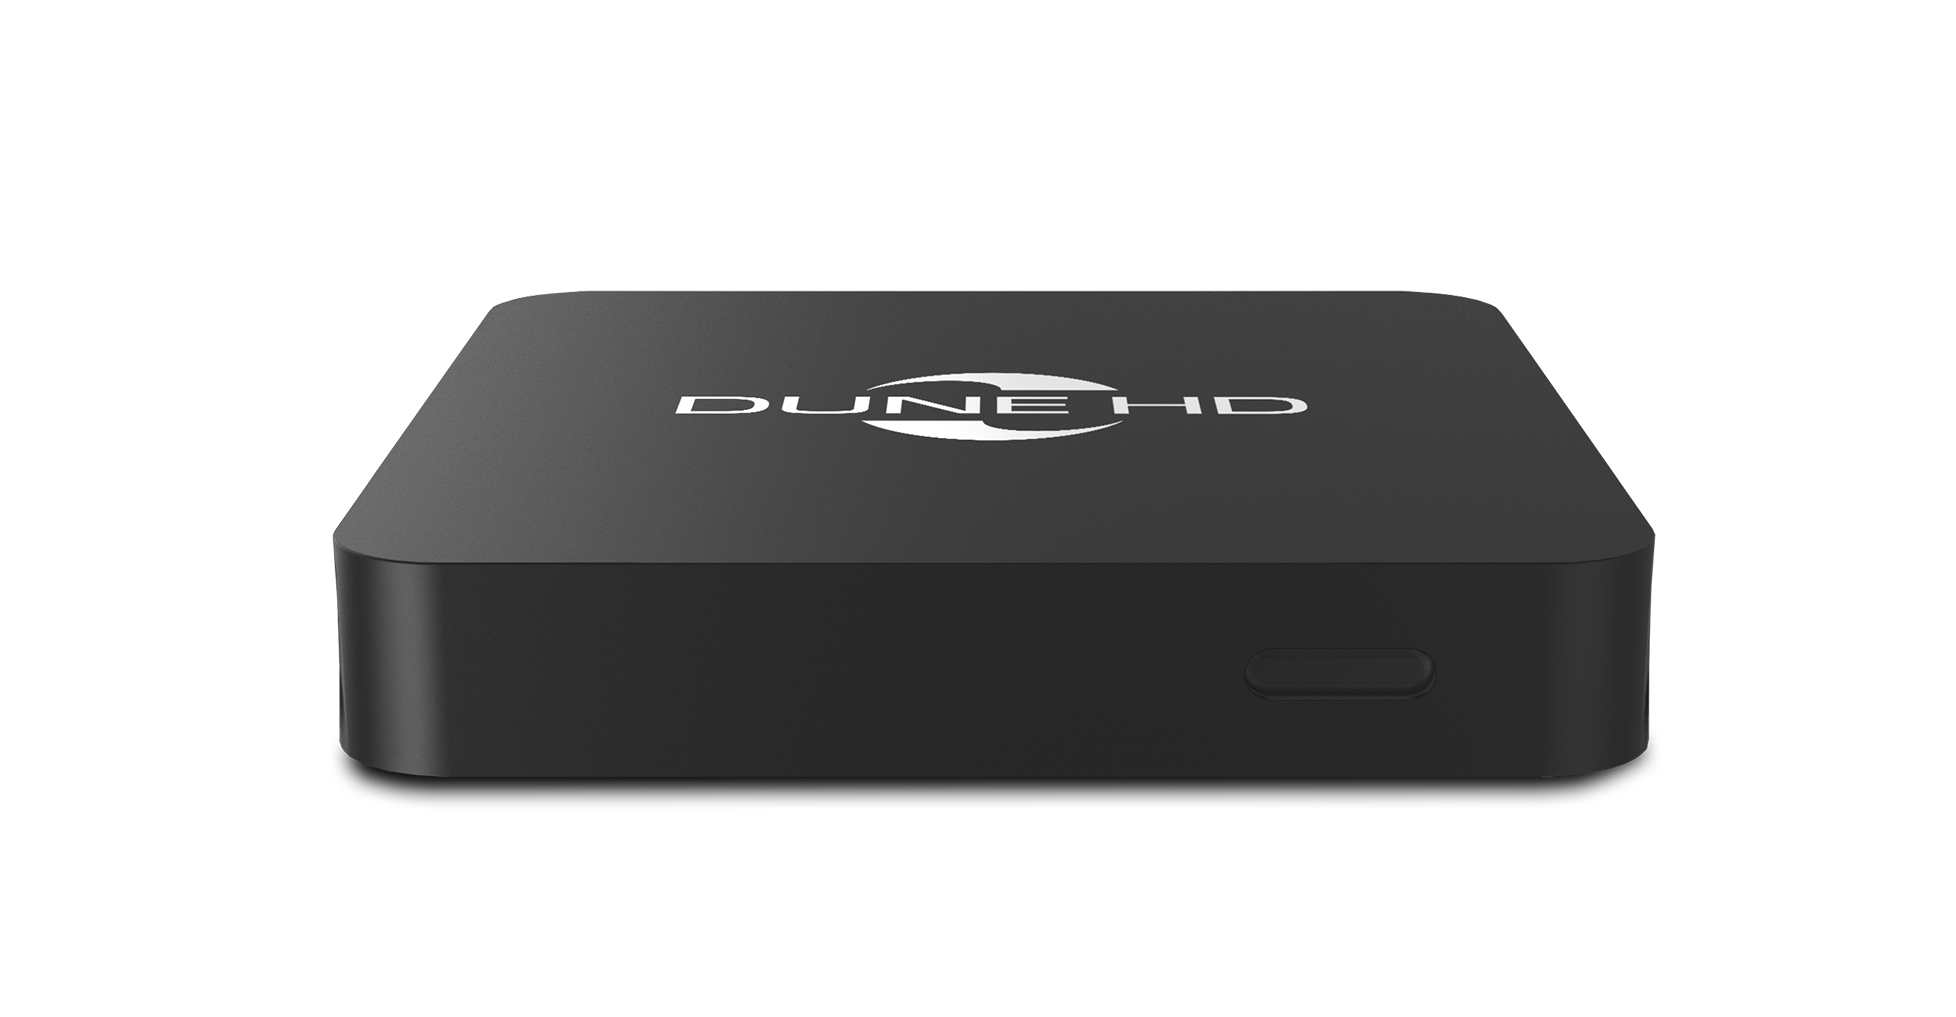 Dune HD Media Player - Dune HD Neo 4K | Dune HD